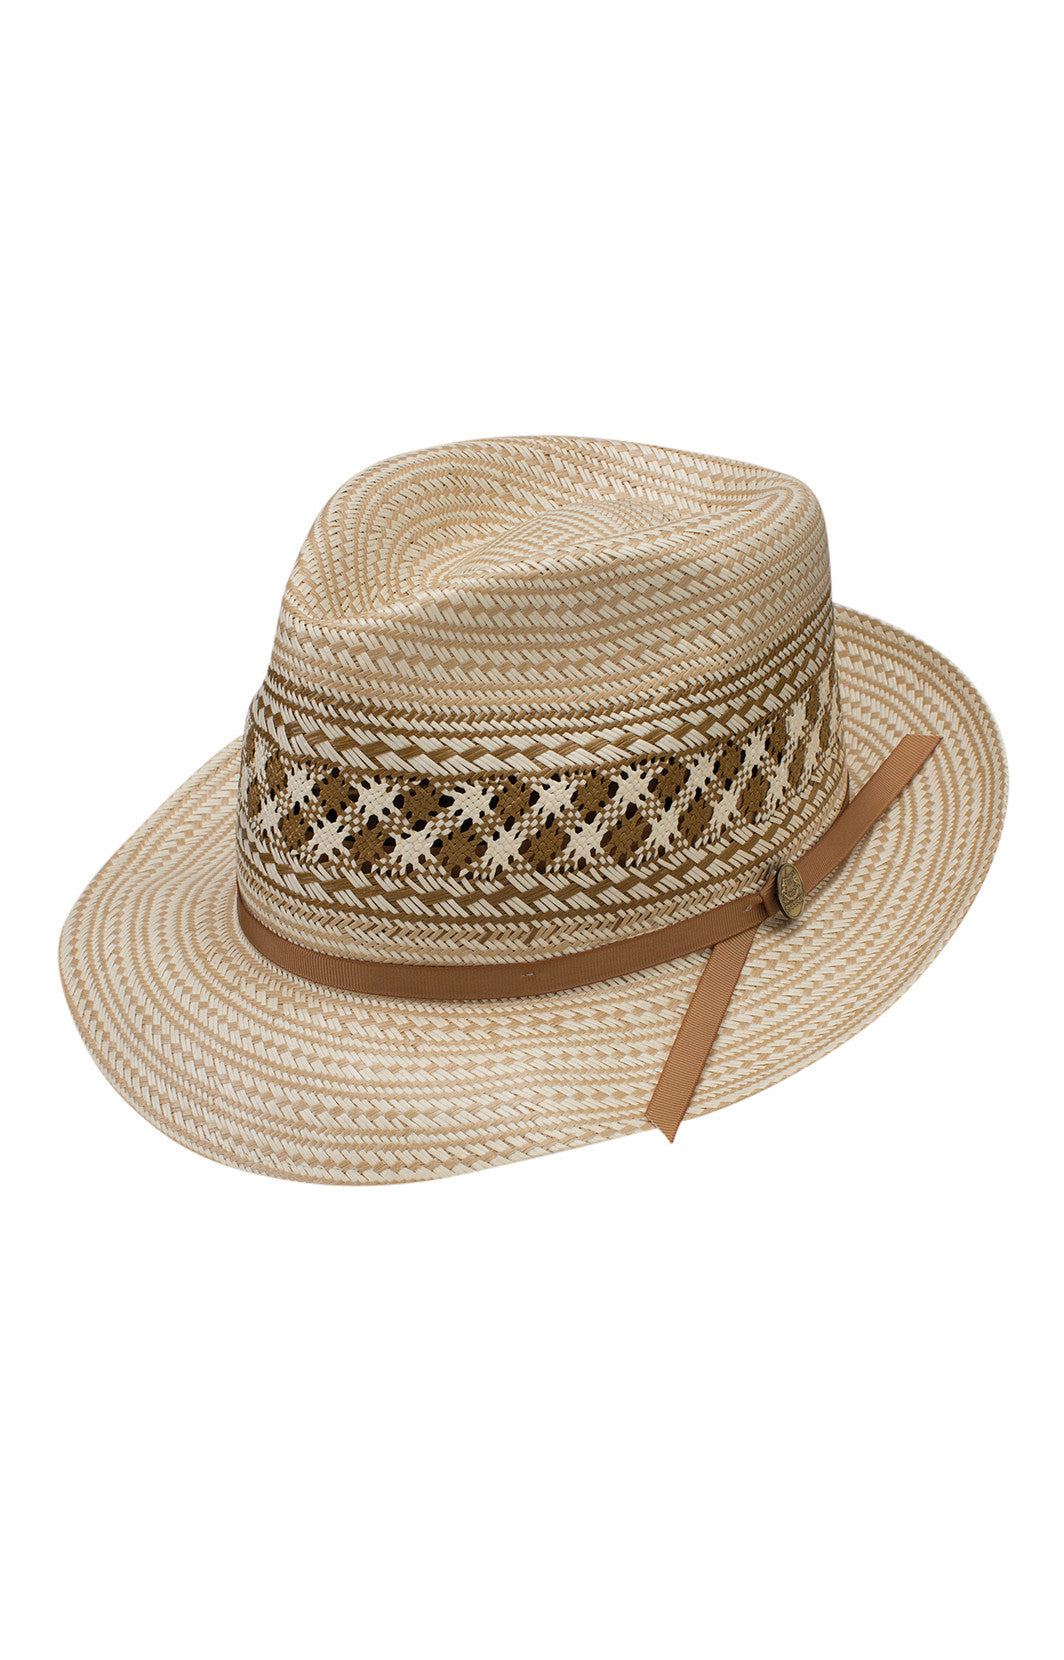 stetson hats, straw hats, mens hats, fun summer hats